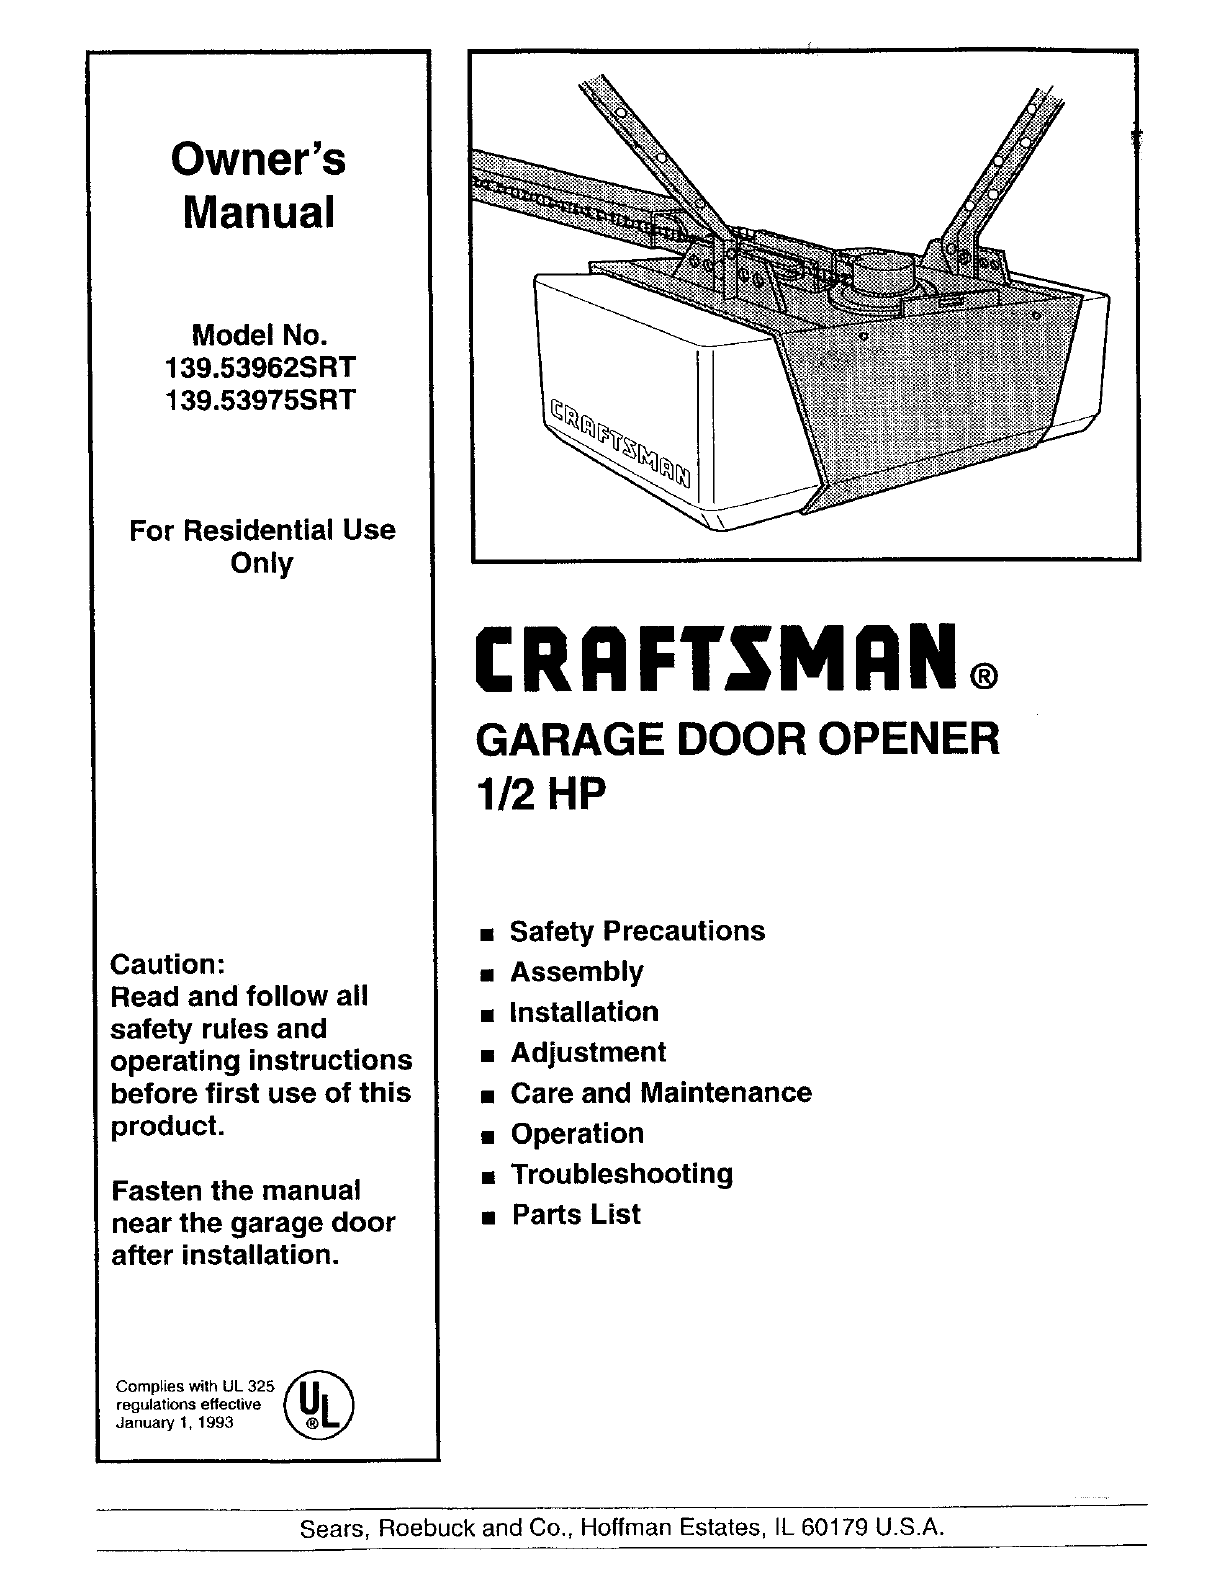 Craftsman Garage Door Opener 139 Srt User Guide